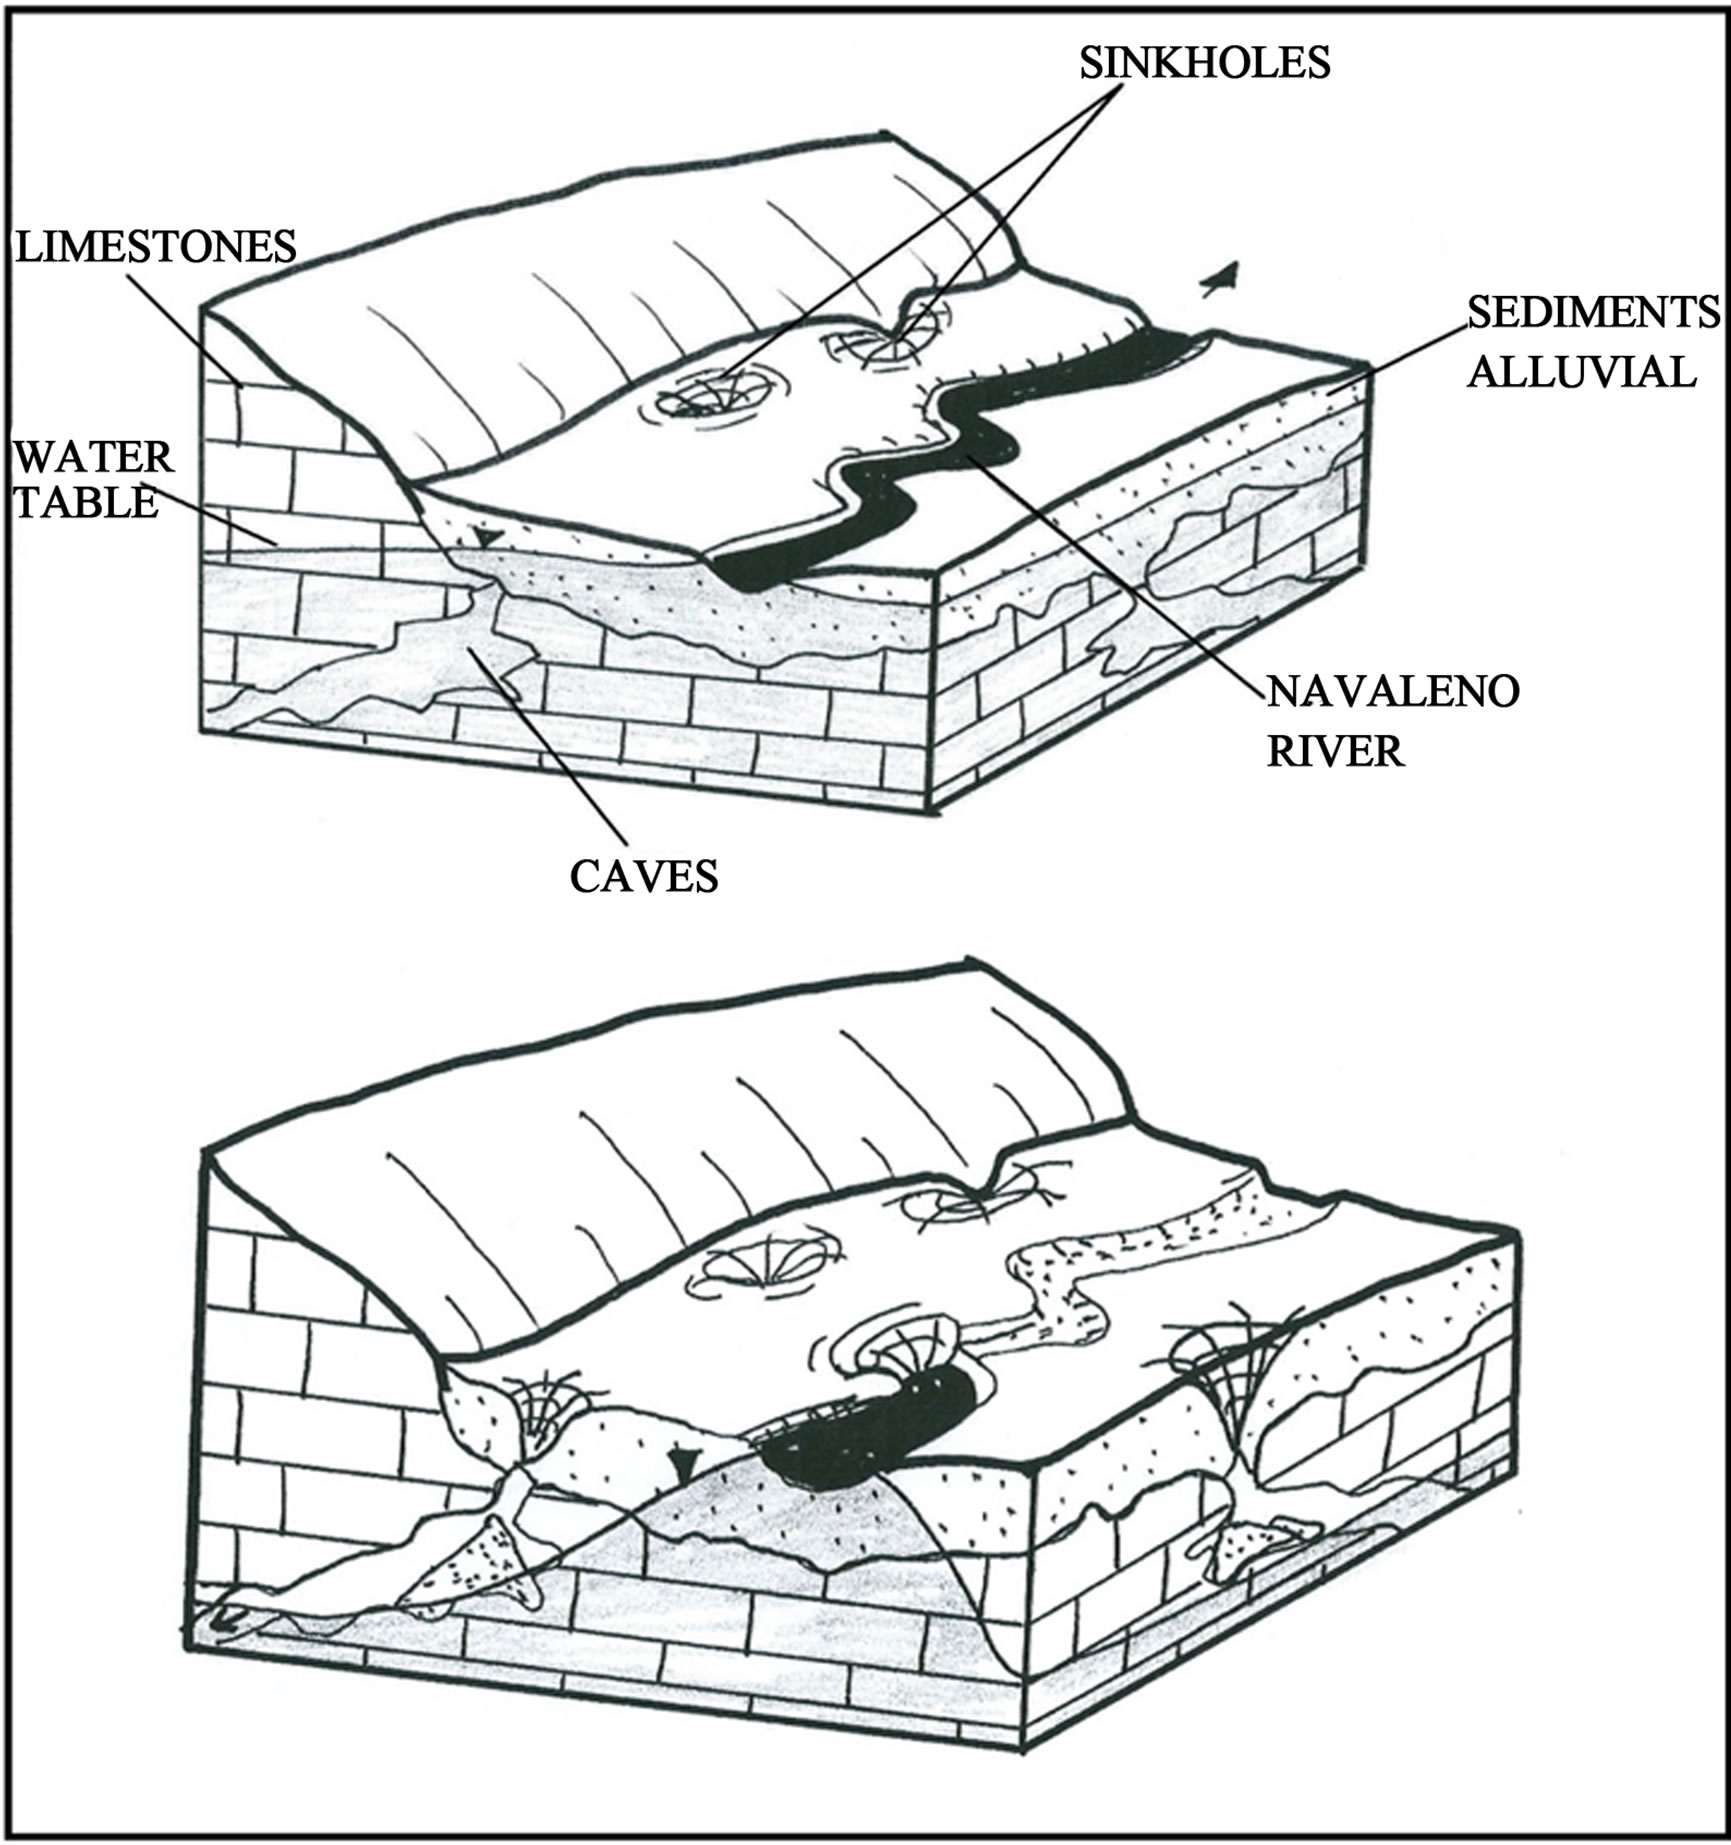 sinkhole formation diagram sketch coloring page